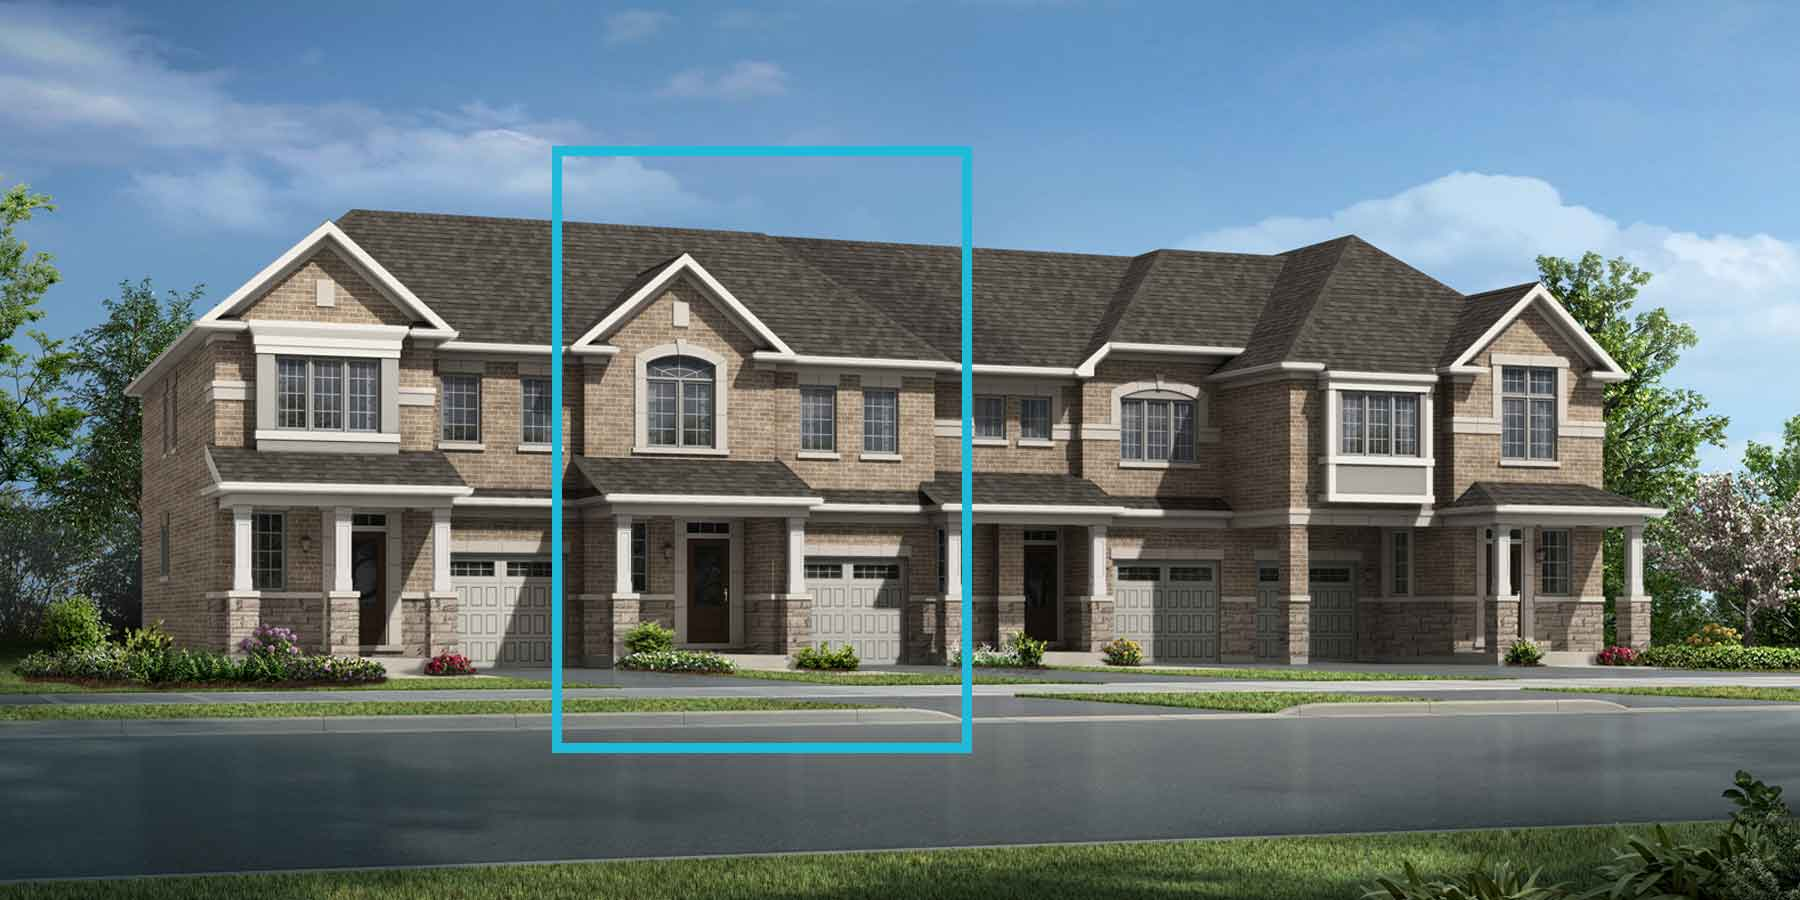 Whitburn Corner Plan TownHomes at Seaton Whitevale in Pickering Ontario by Mattamy Homes